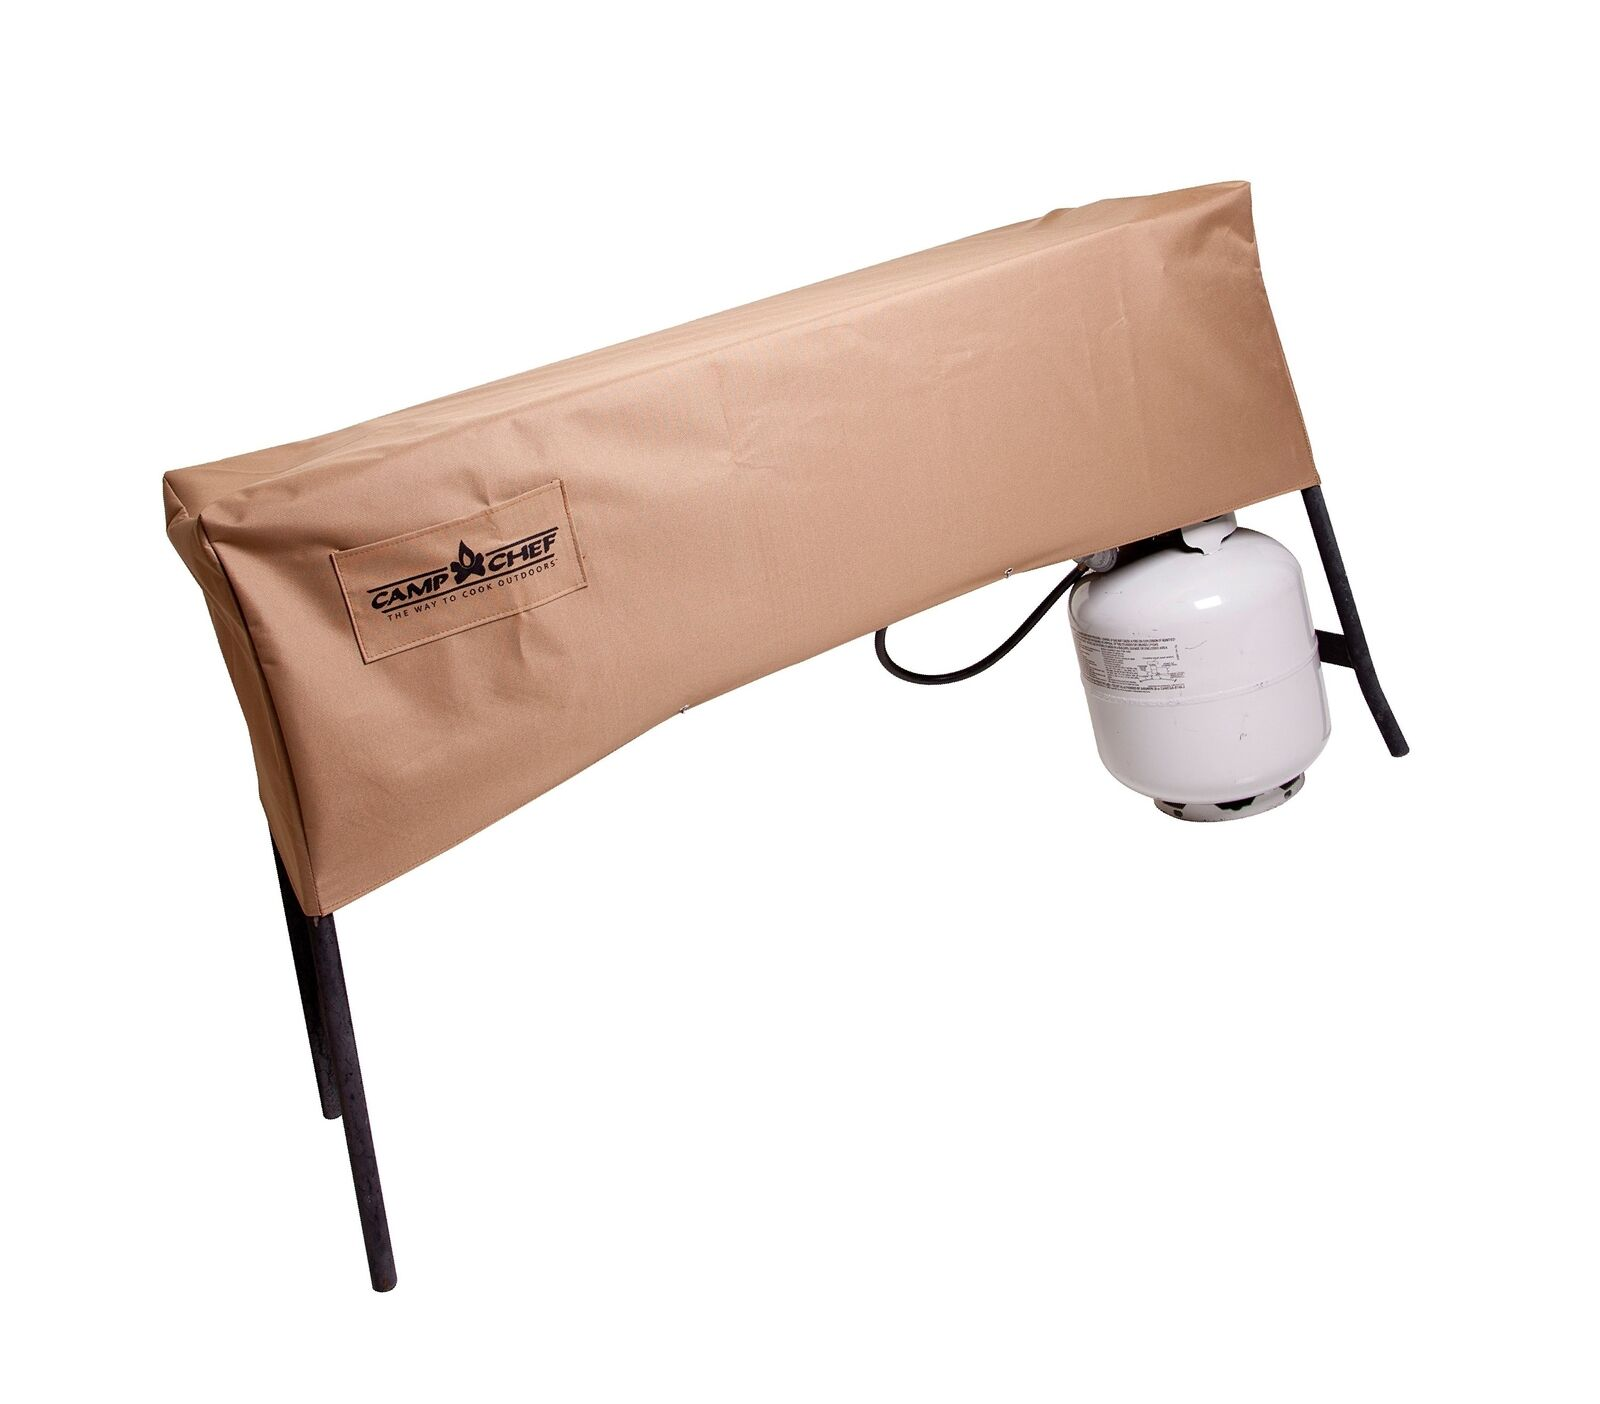 Camp  Chef Pro 90 Three-Burner Patio Cover Tan One Size  welcome to buy